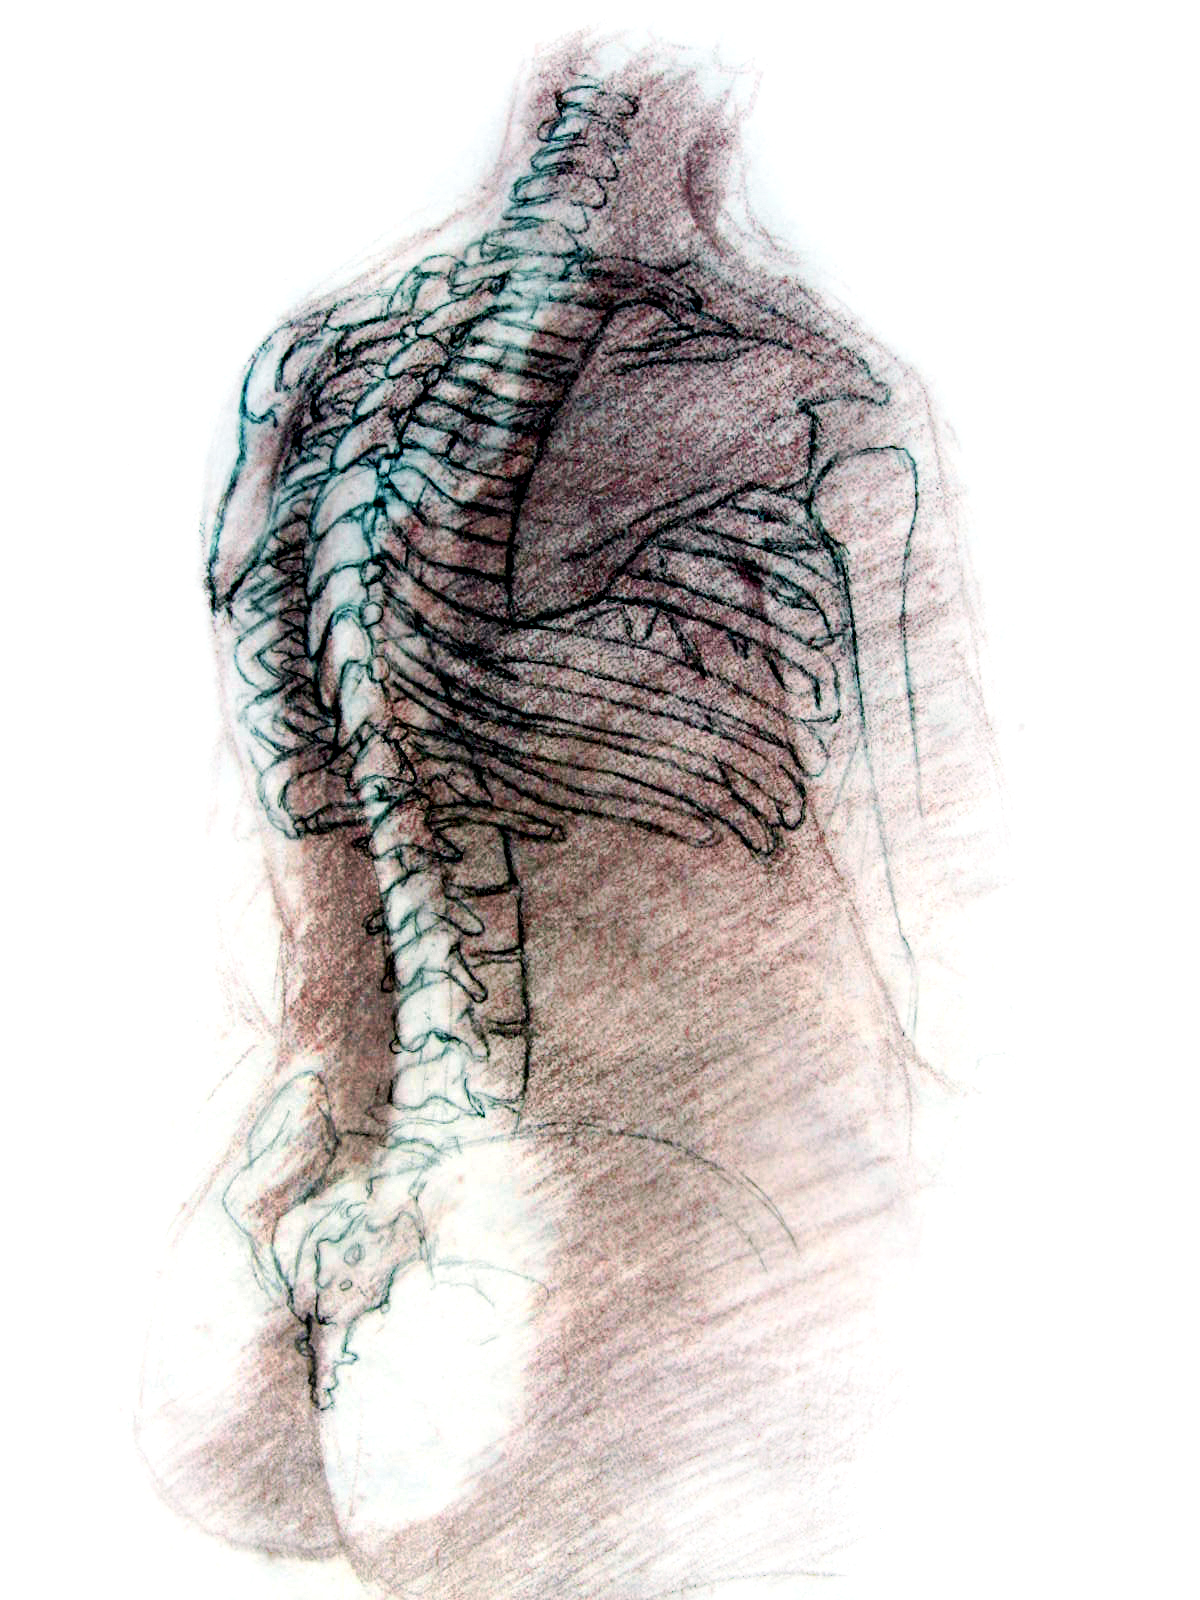 Spine Structure, Seated